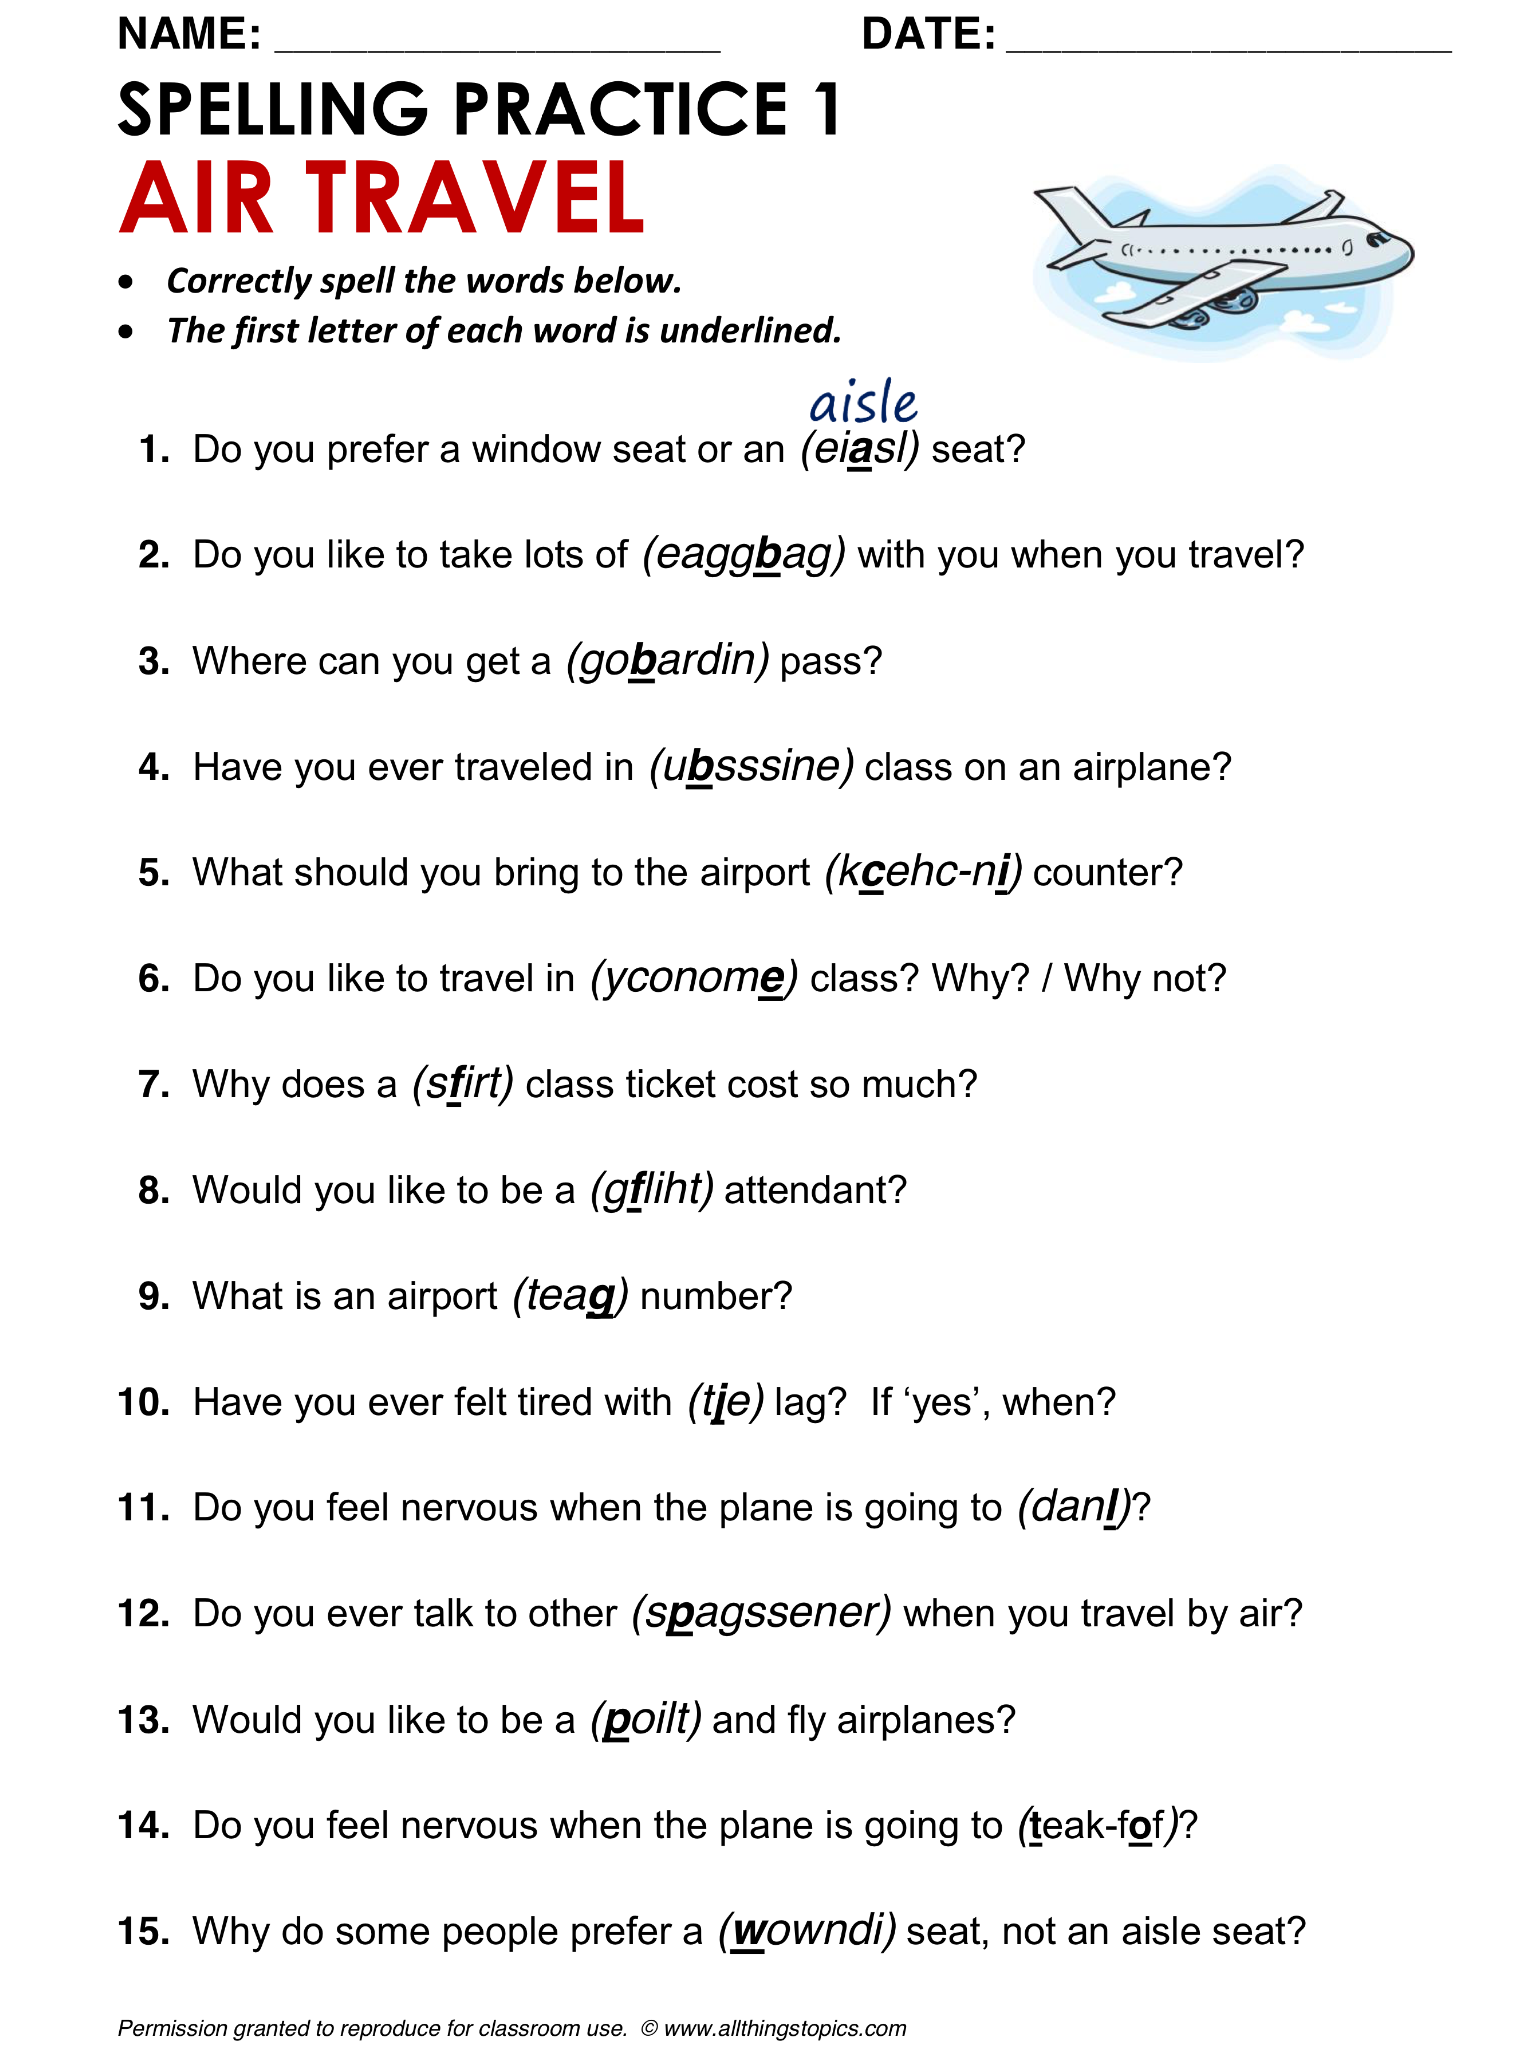 Airports And Air Travel Spelling Worksheet Air Travel 1